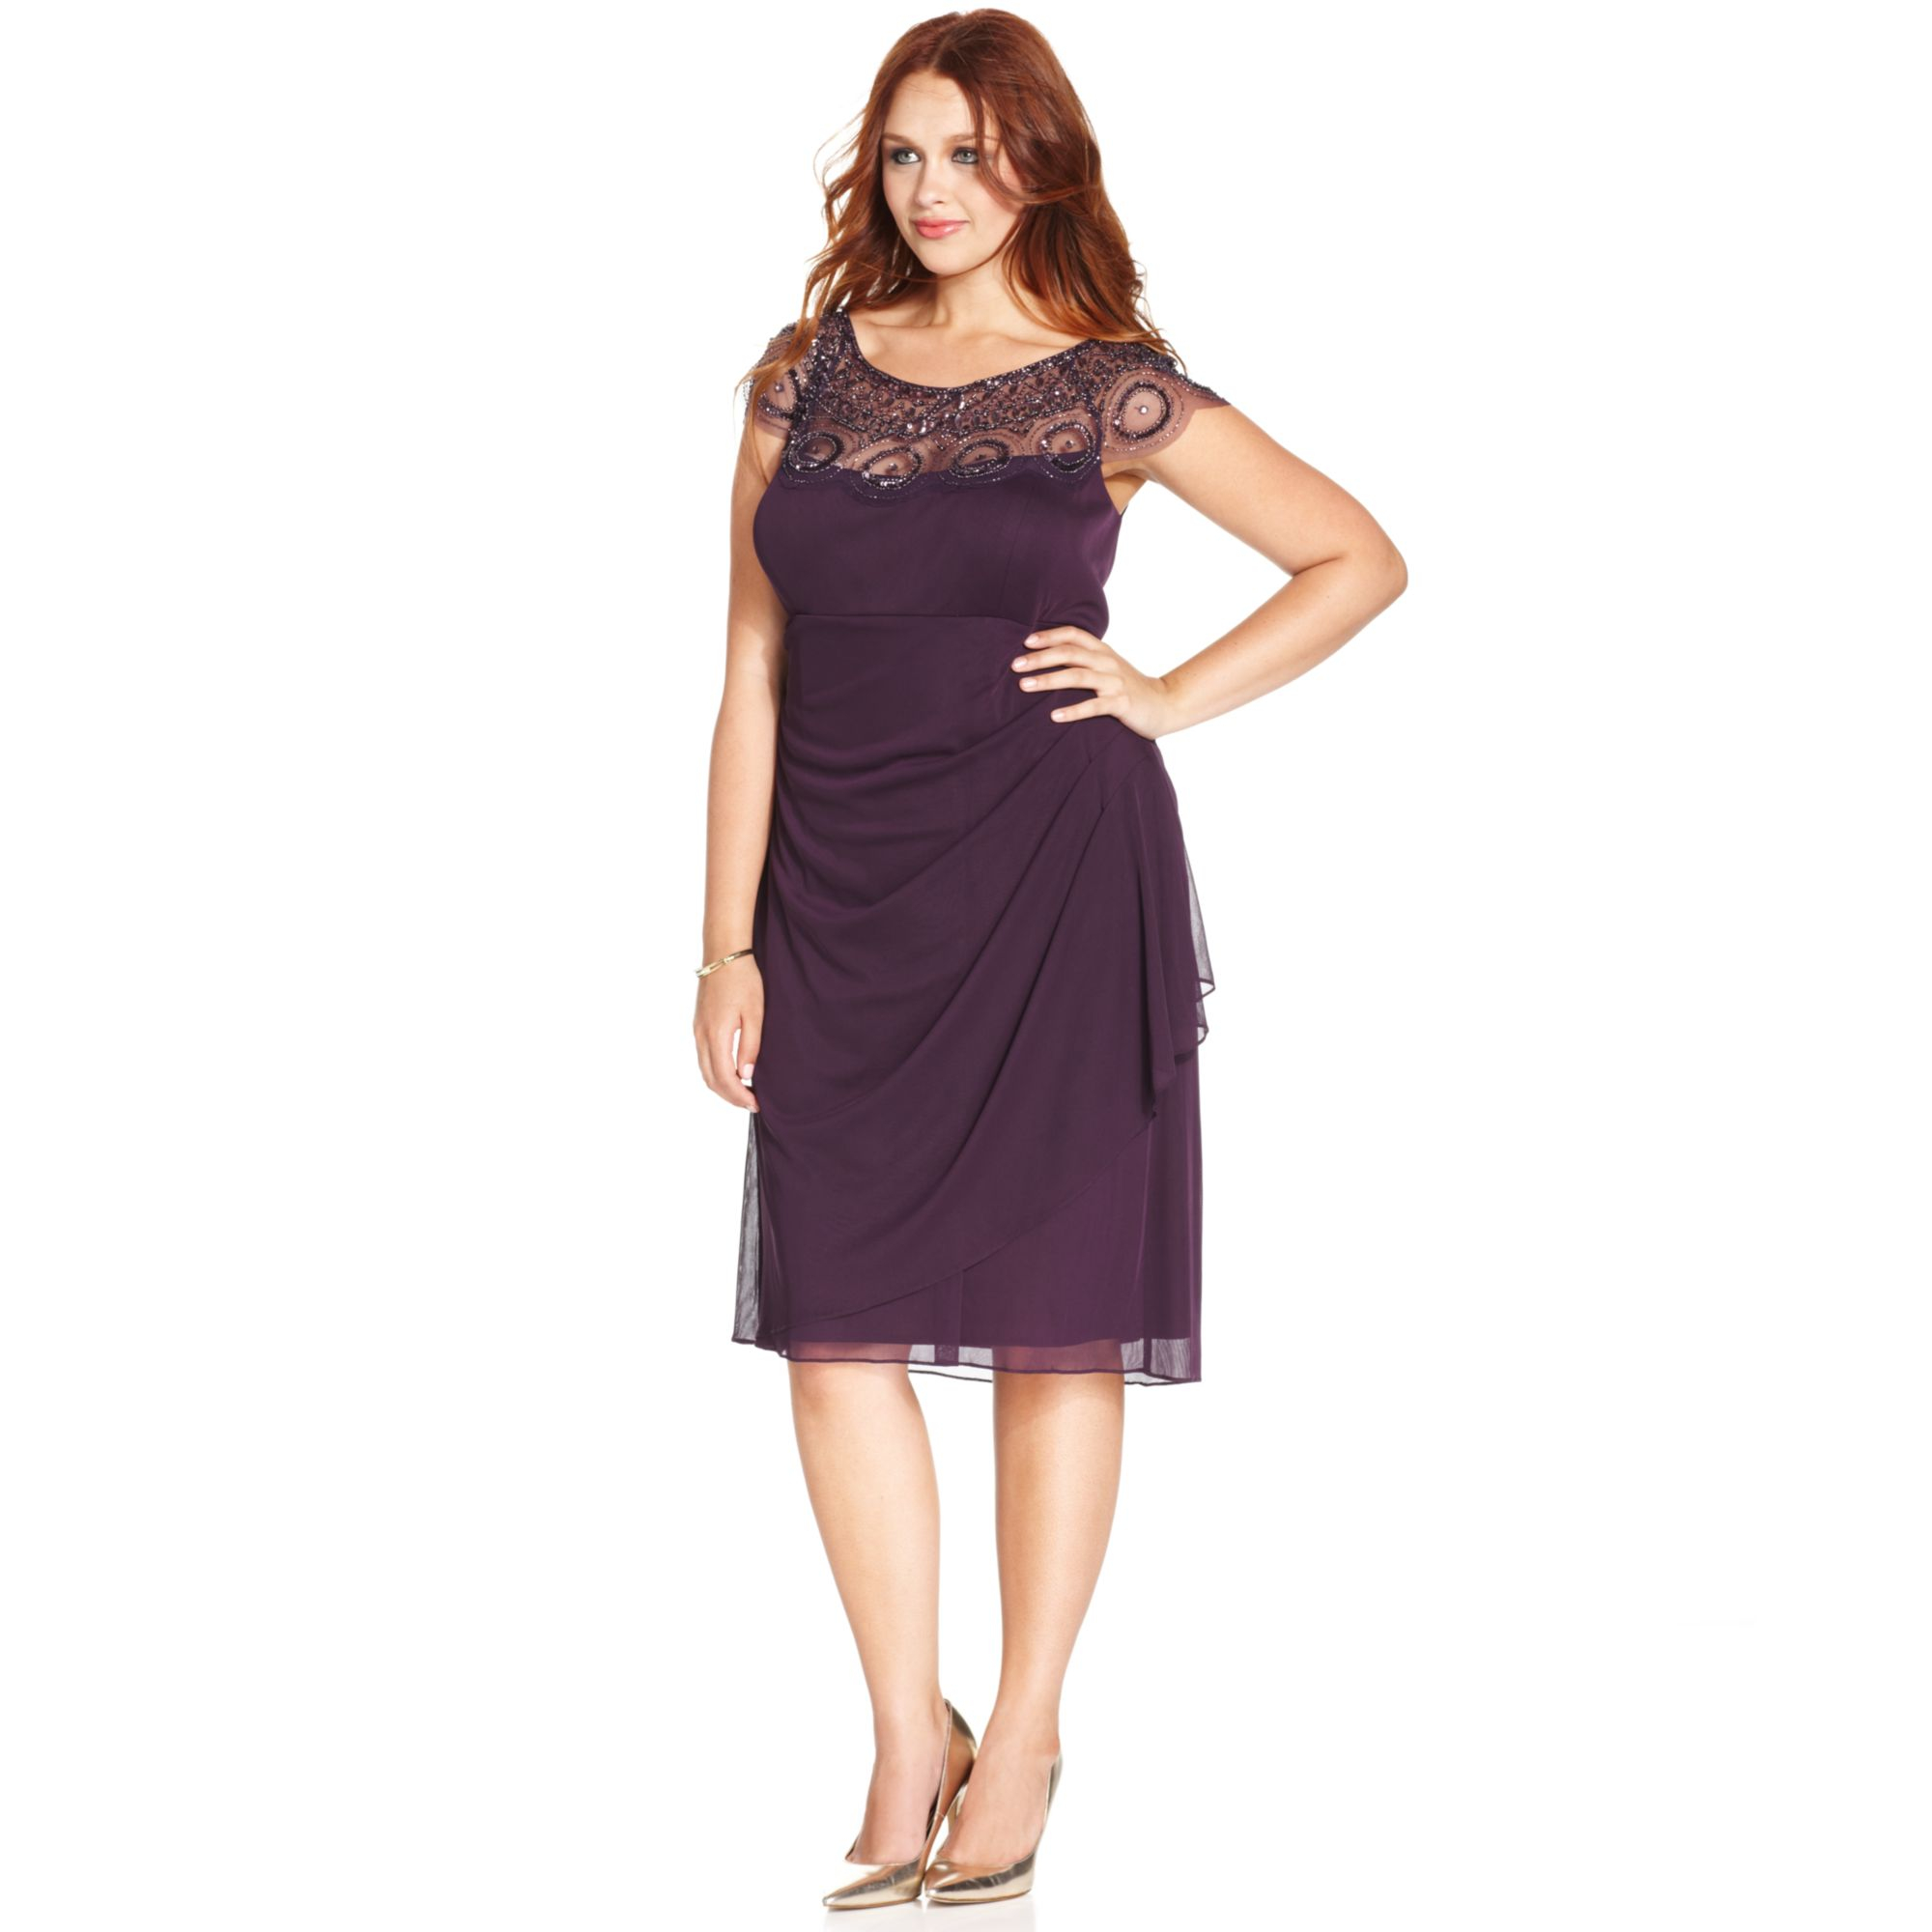 plus size dresses below $50